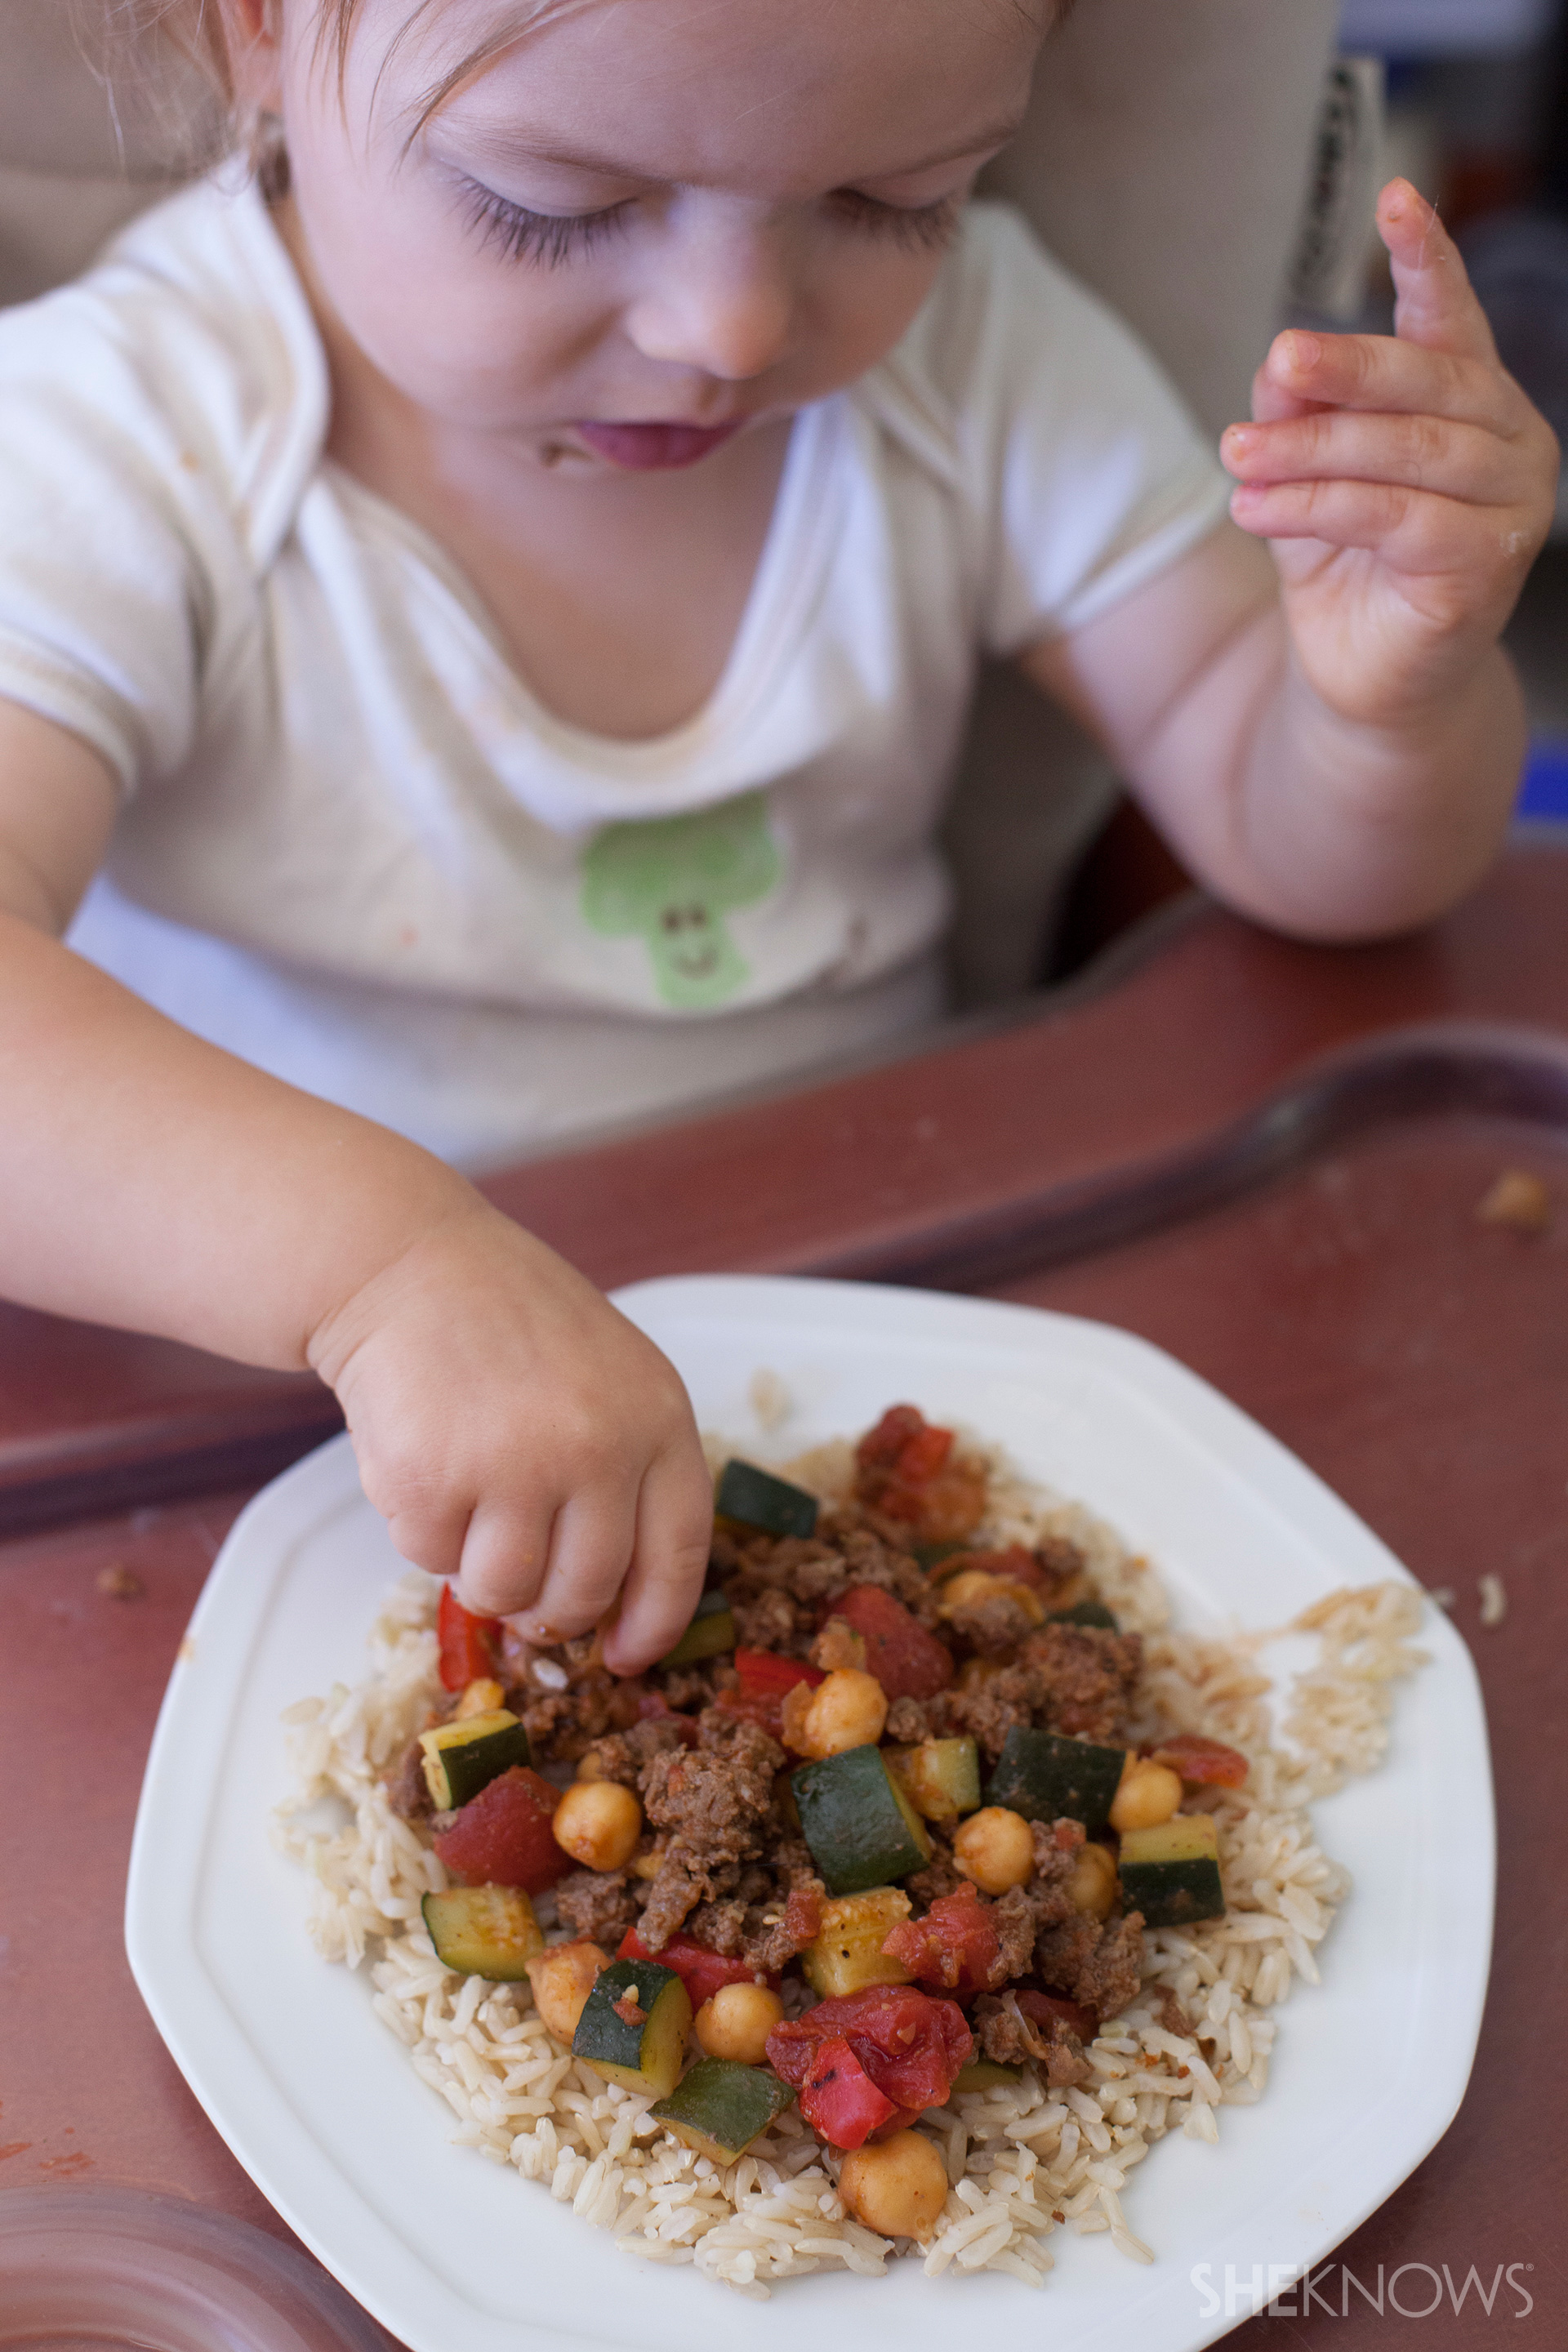 A chunky meal perfect for toddler fingers